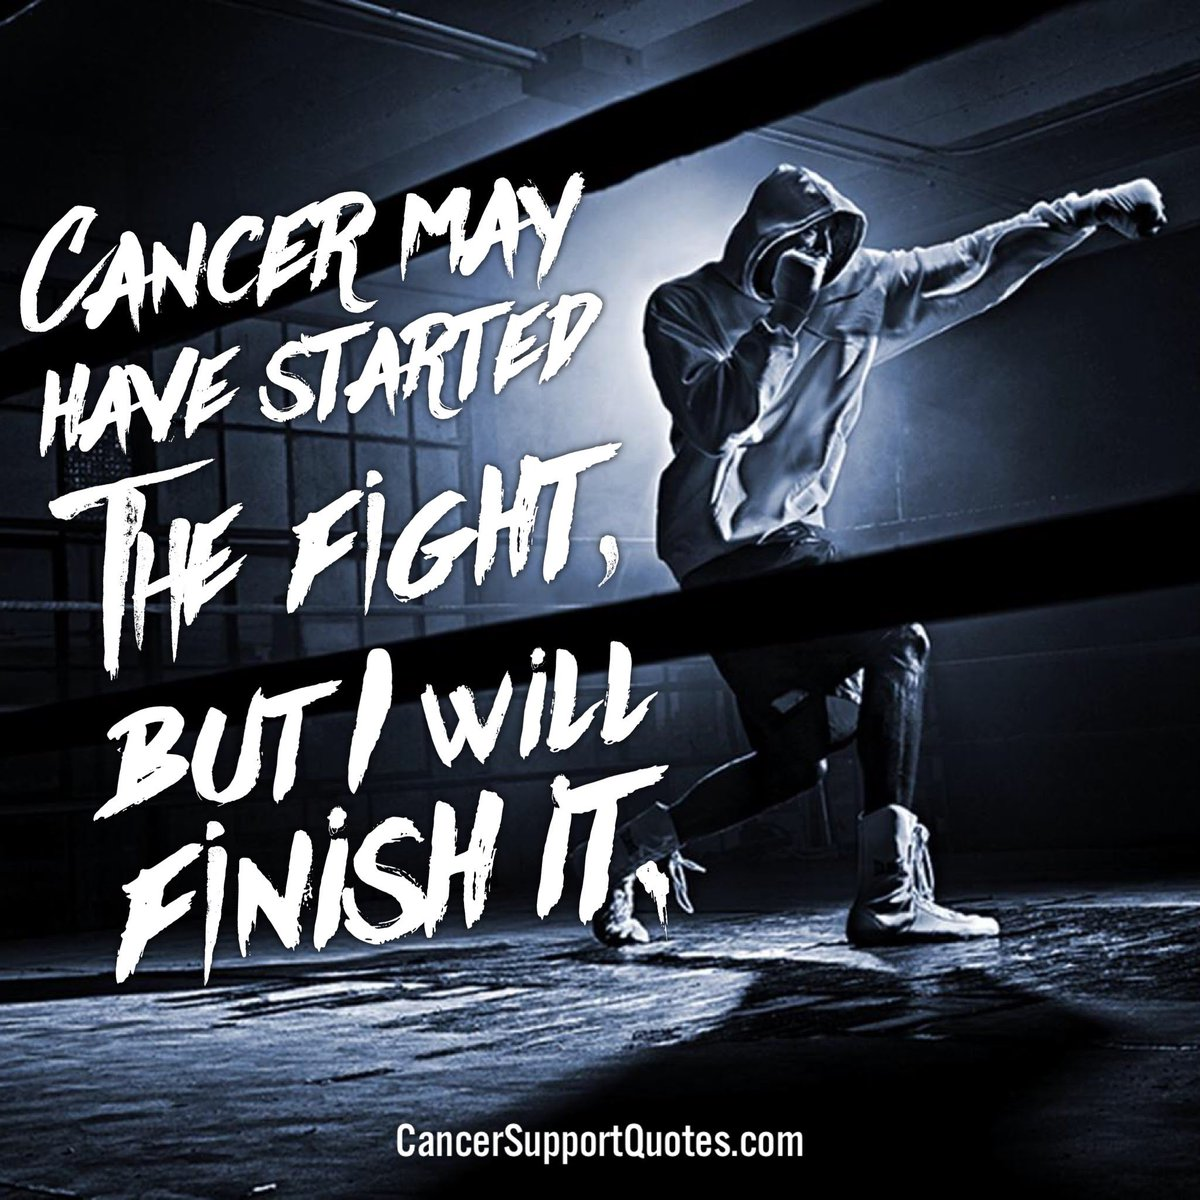 Cancer may have started the fight, but I will finish it ...